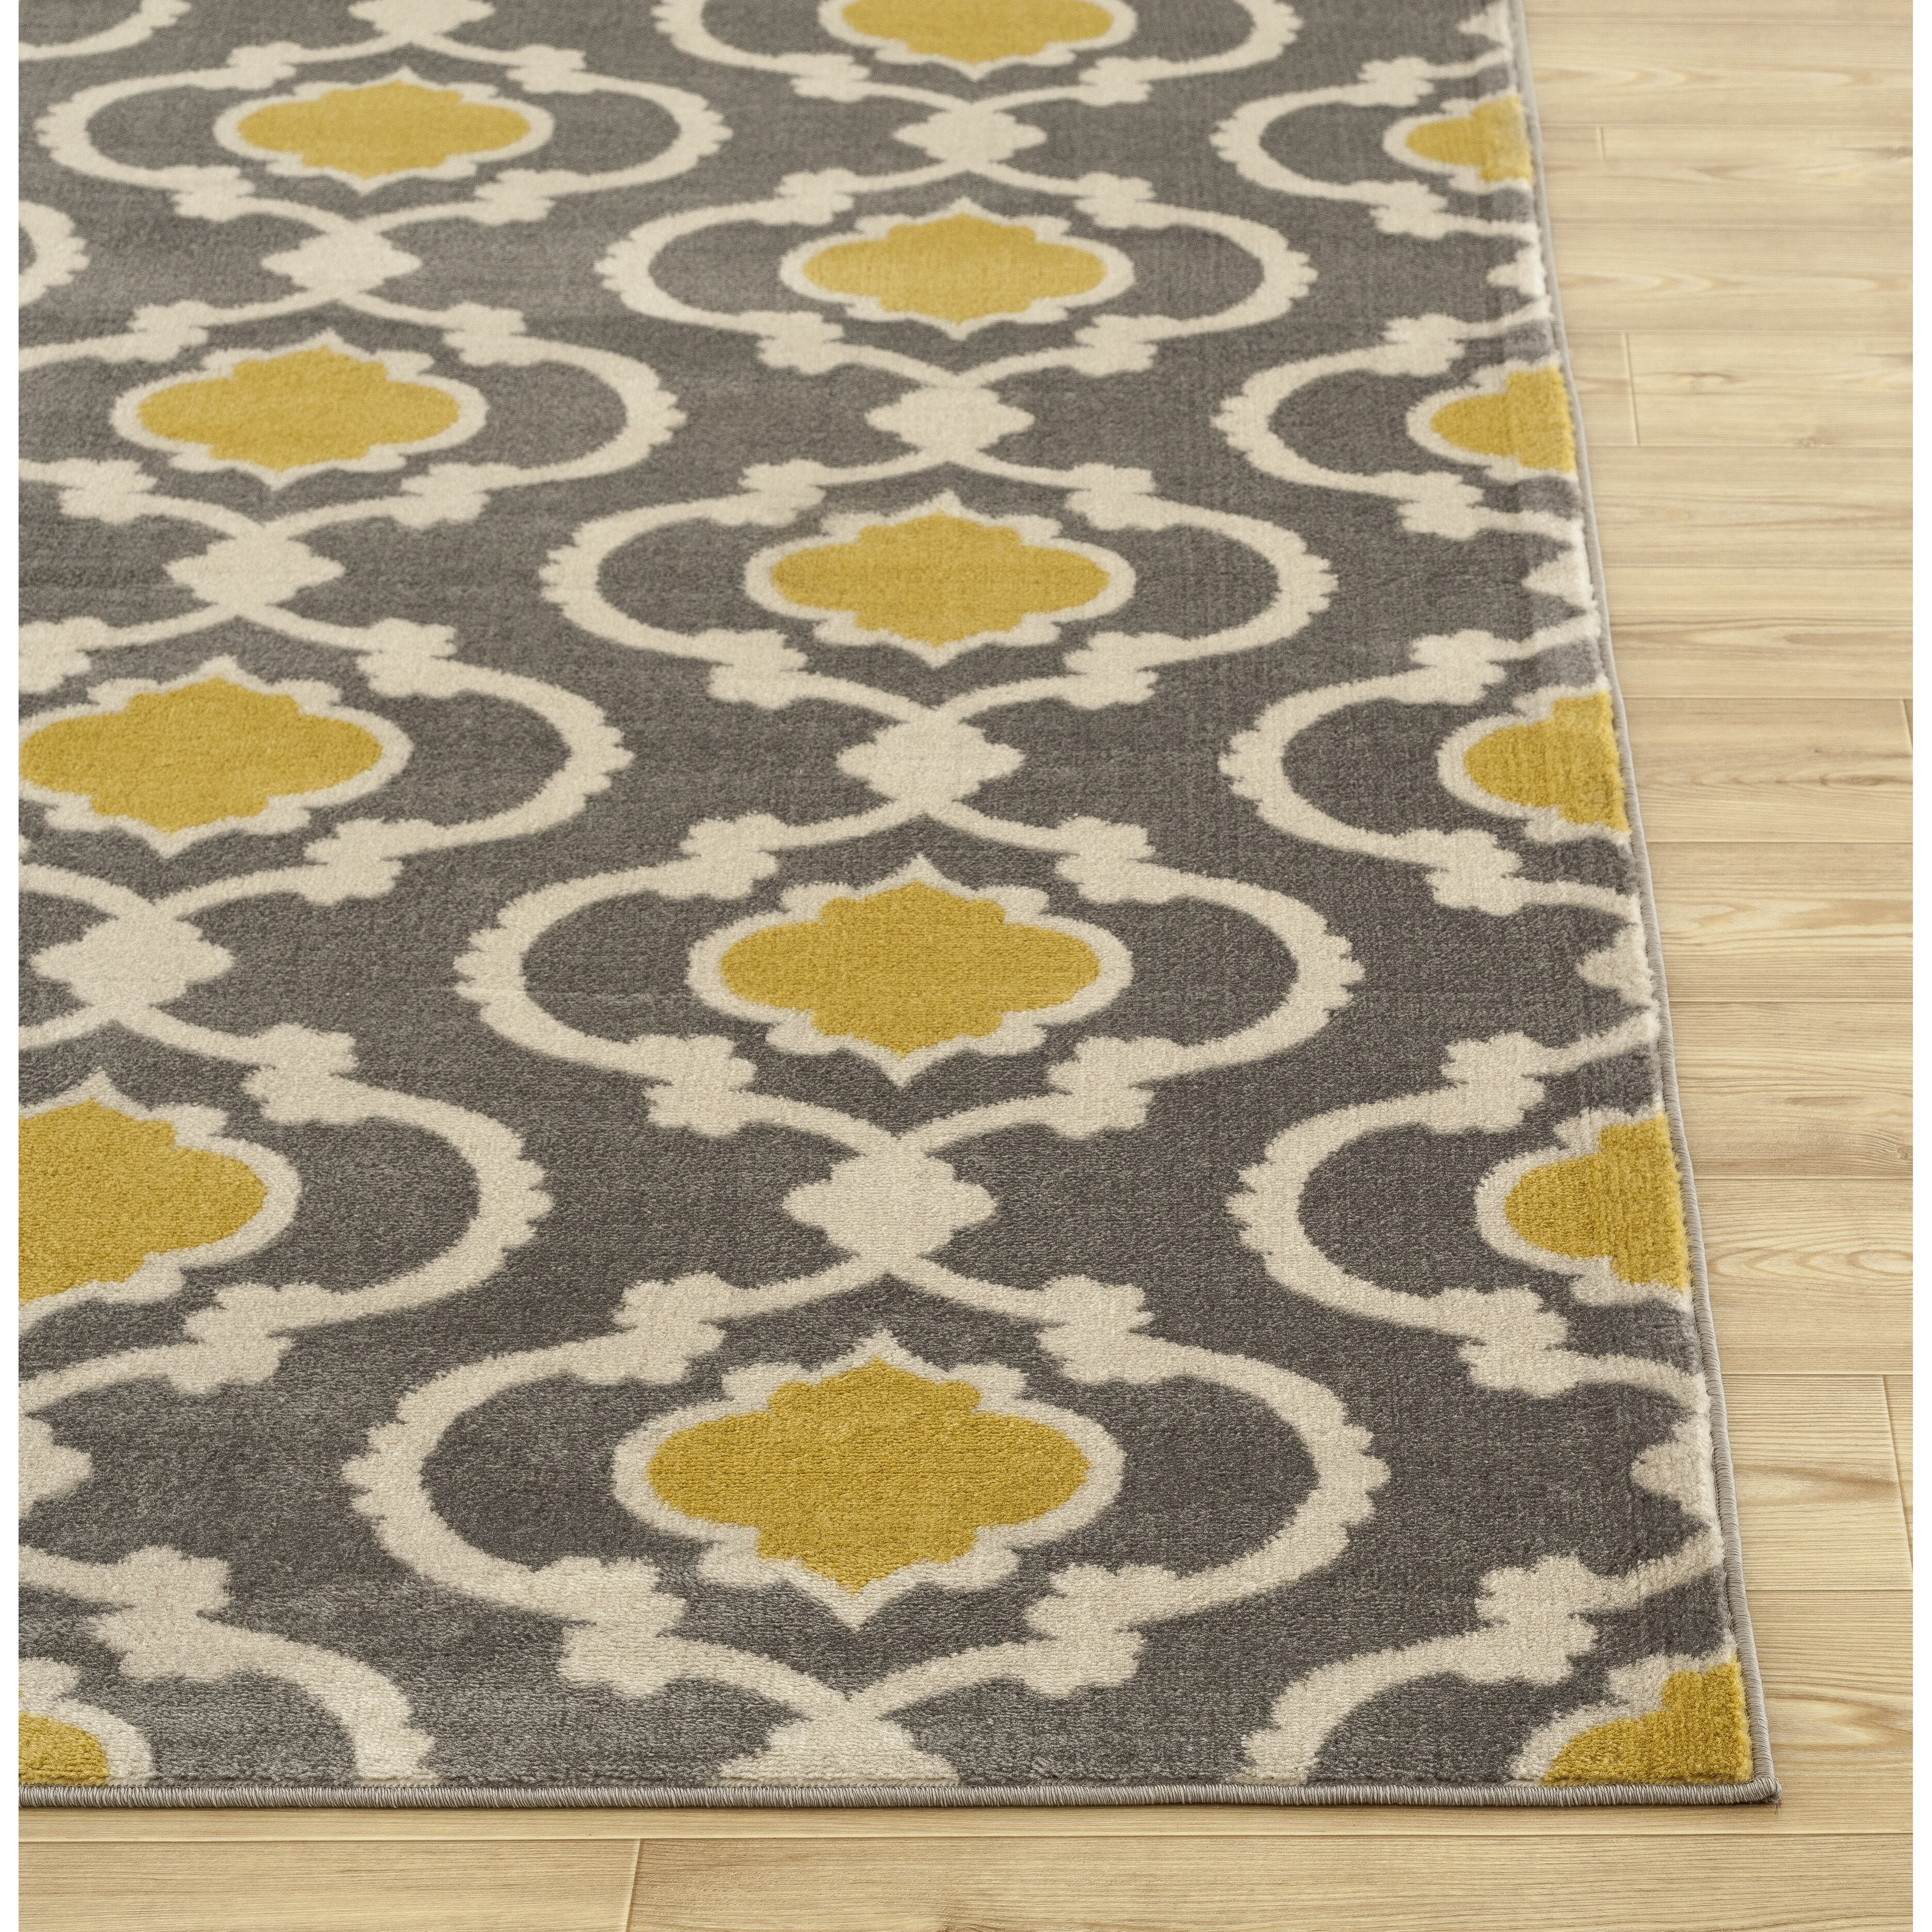 Area Rugs Rochester Ny Home Decor